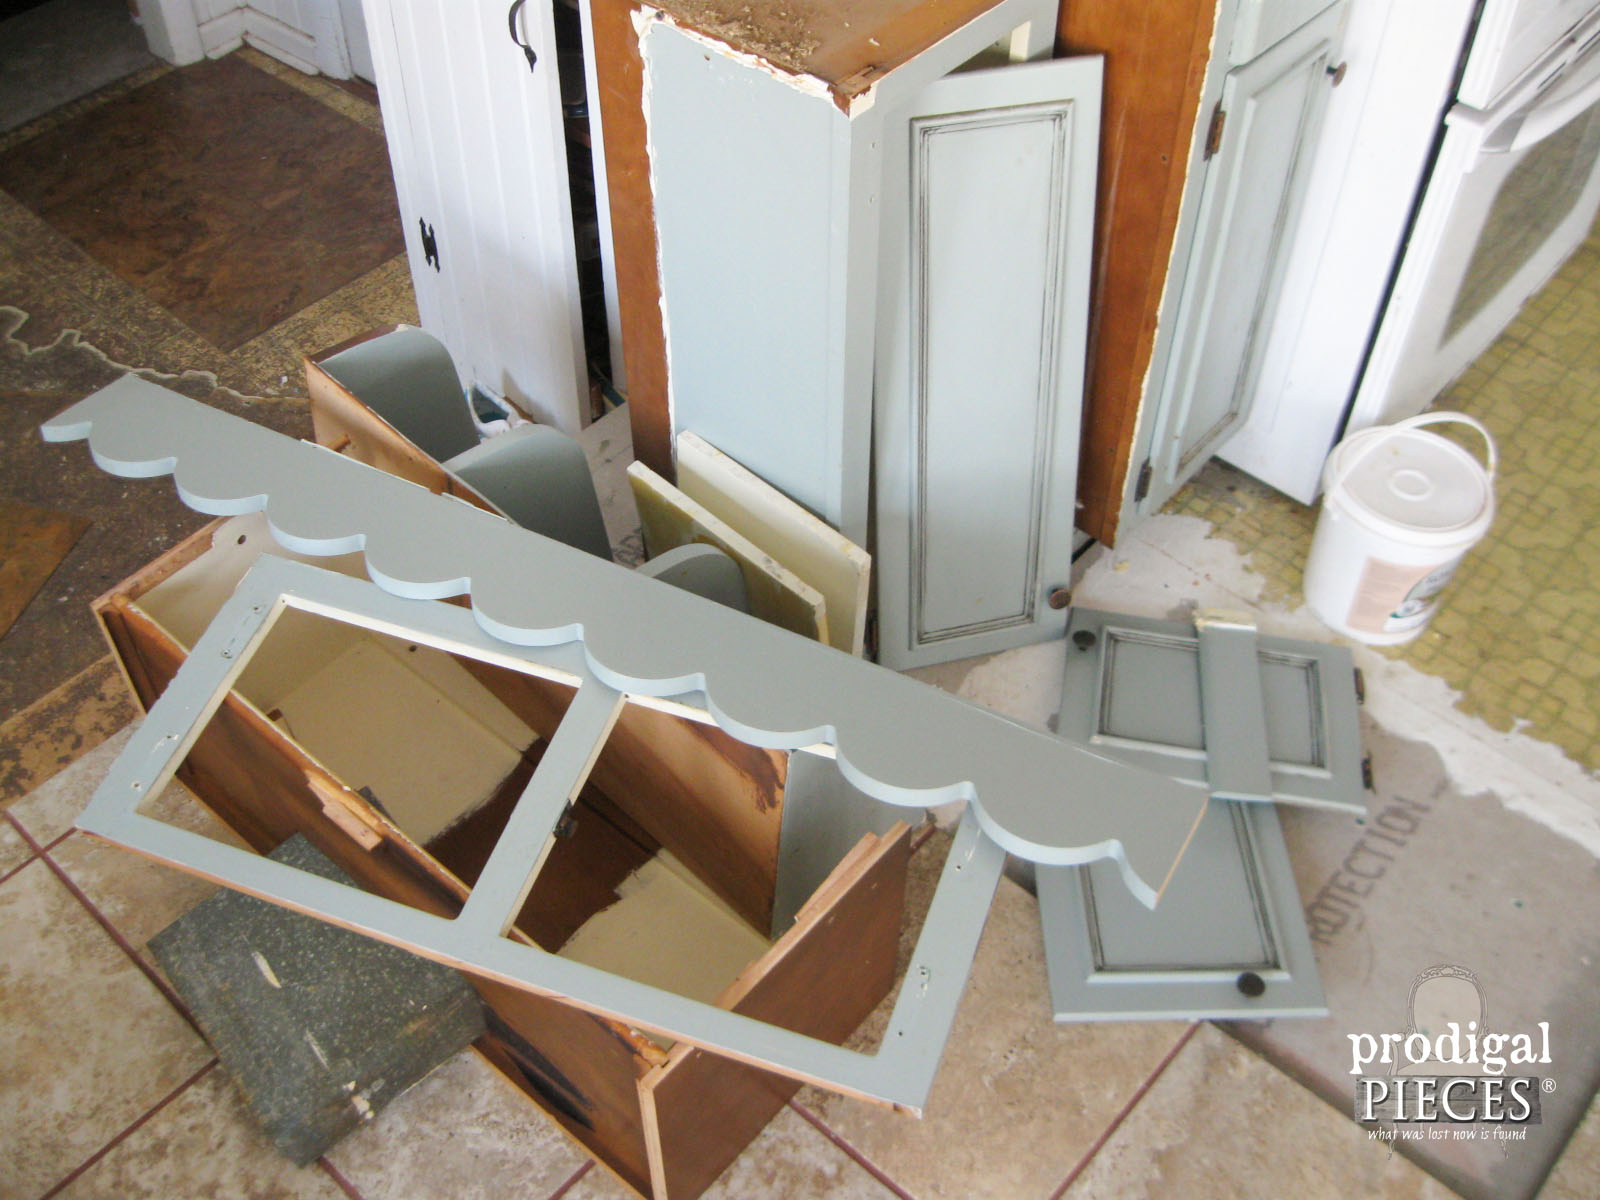 Pile Of Discarded Kitchen Cabinets For Repurpose By Prodigal Pieces Www Prodigalpieces